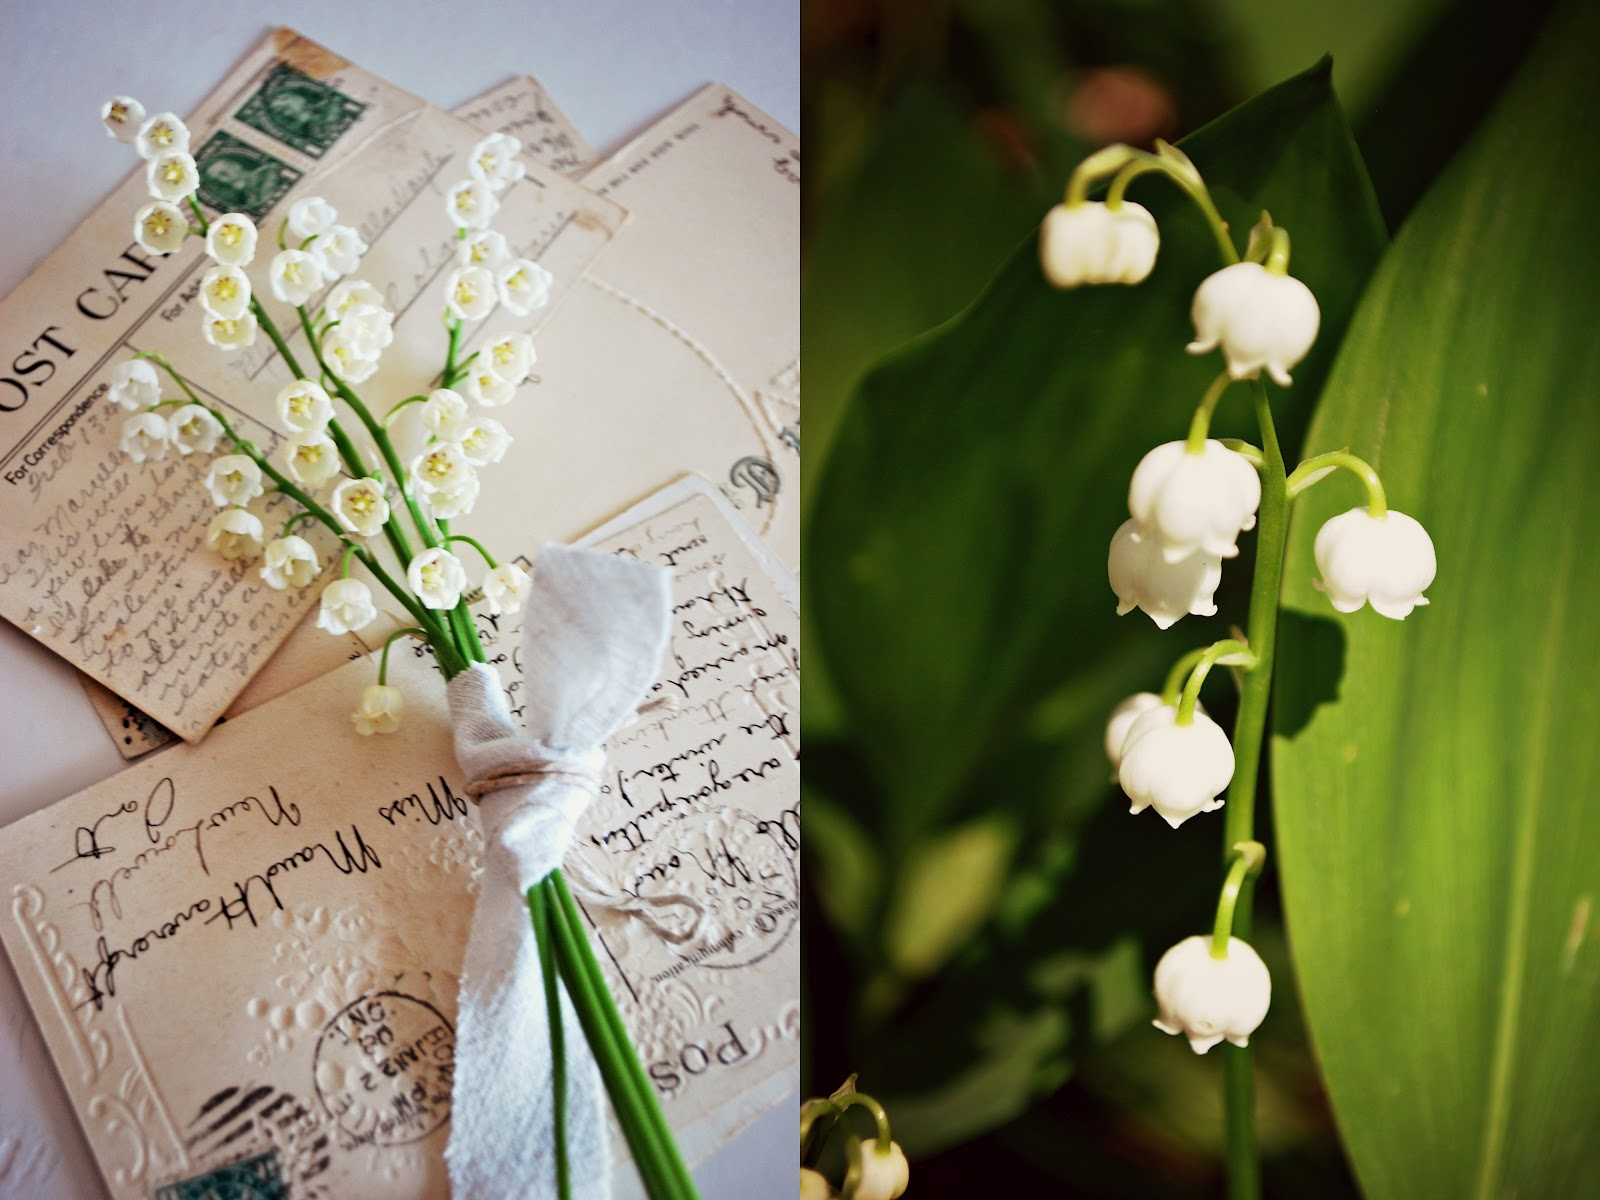 Sylvias simple life the simple pleasure of lily of the valley dear friends i hope you find lilies of the valley blooming in your garden or in your neighbors garden or in the nearby park and you would stop to smell izmirmasajfo